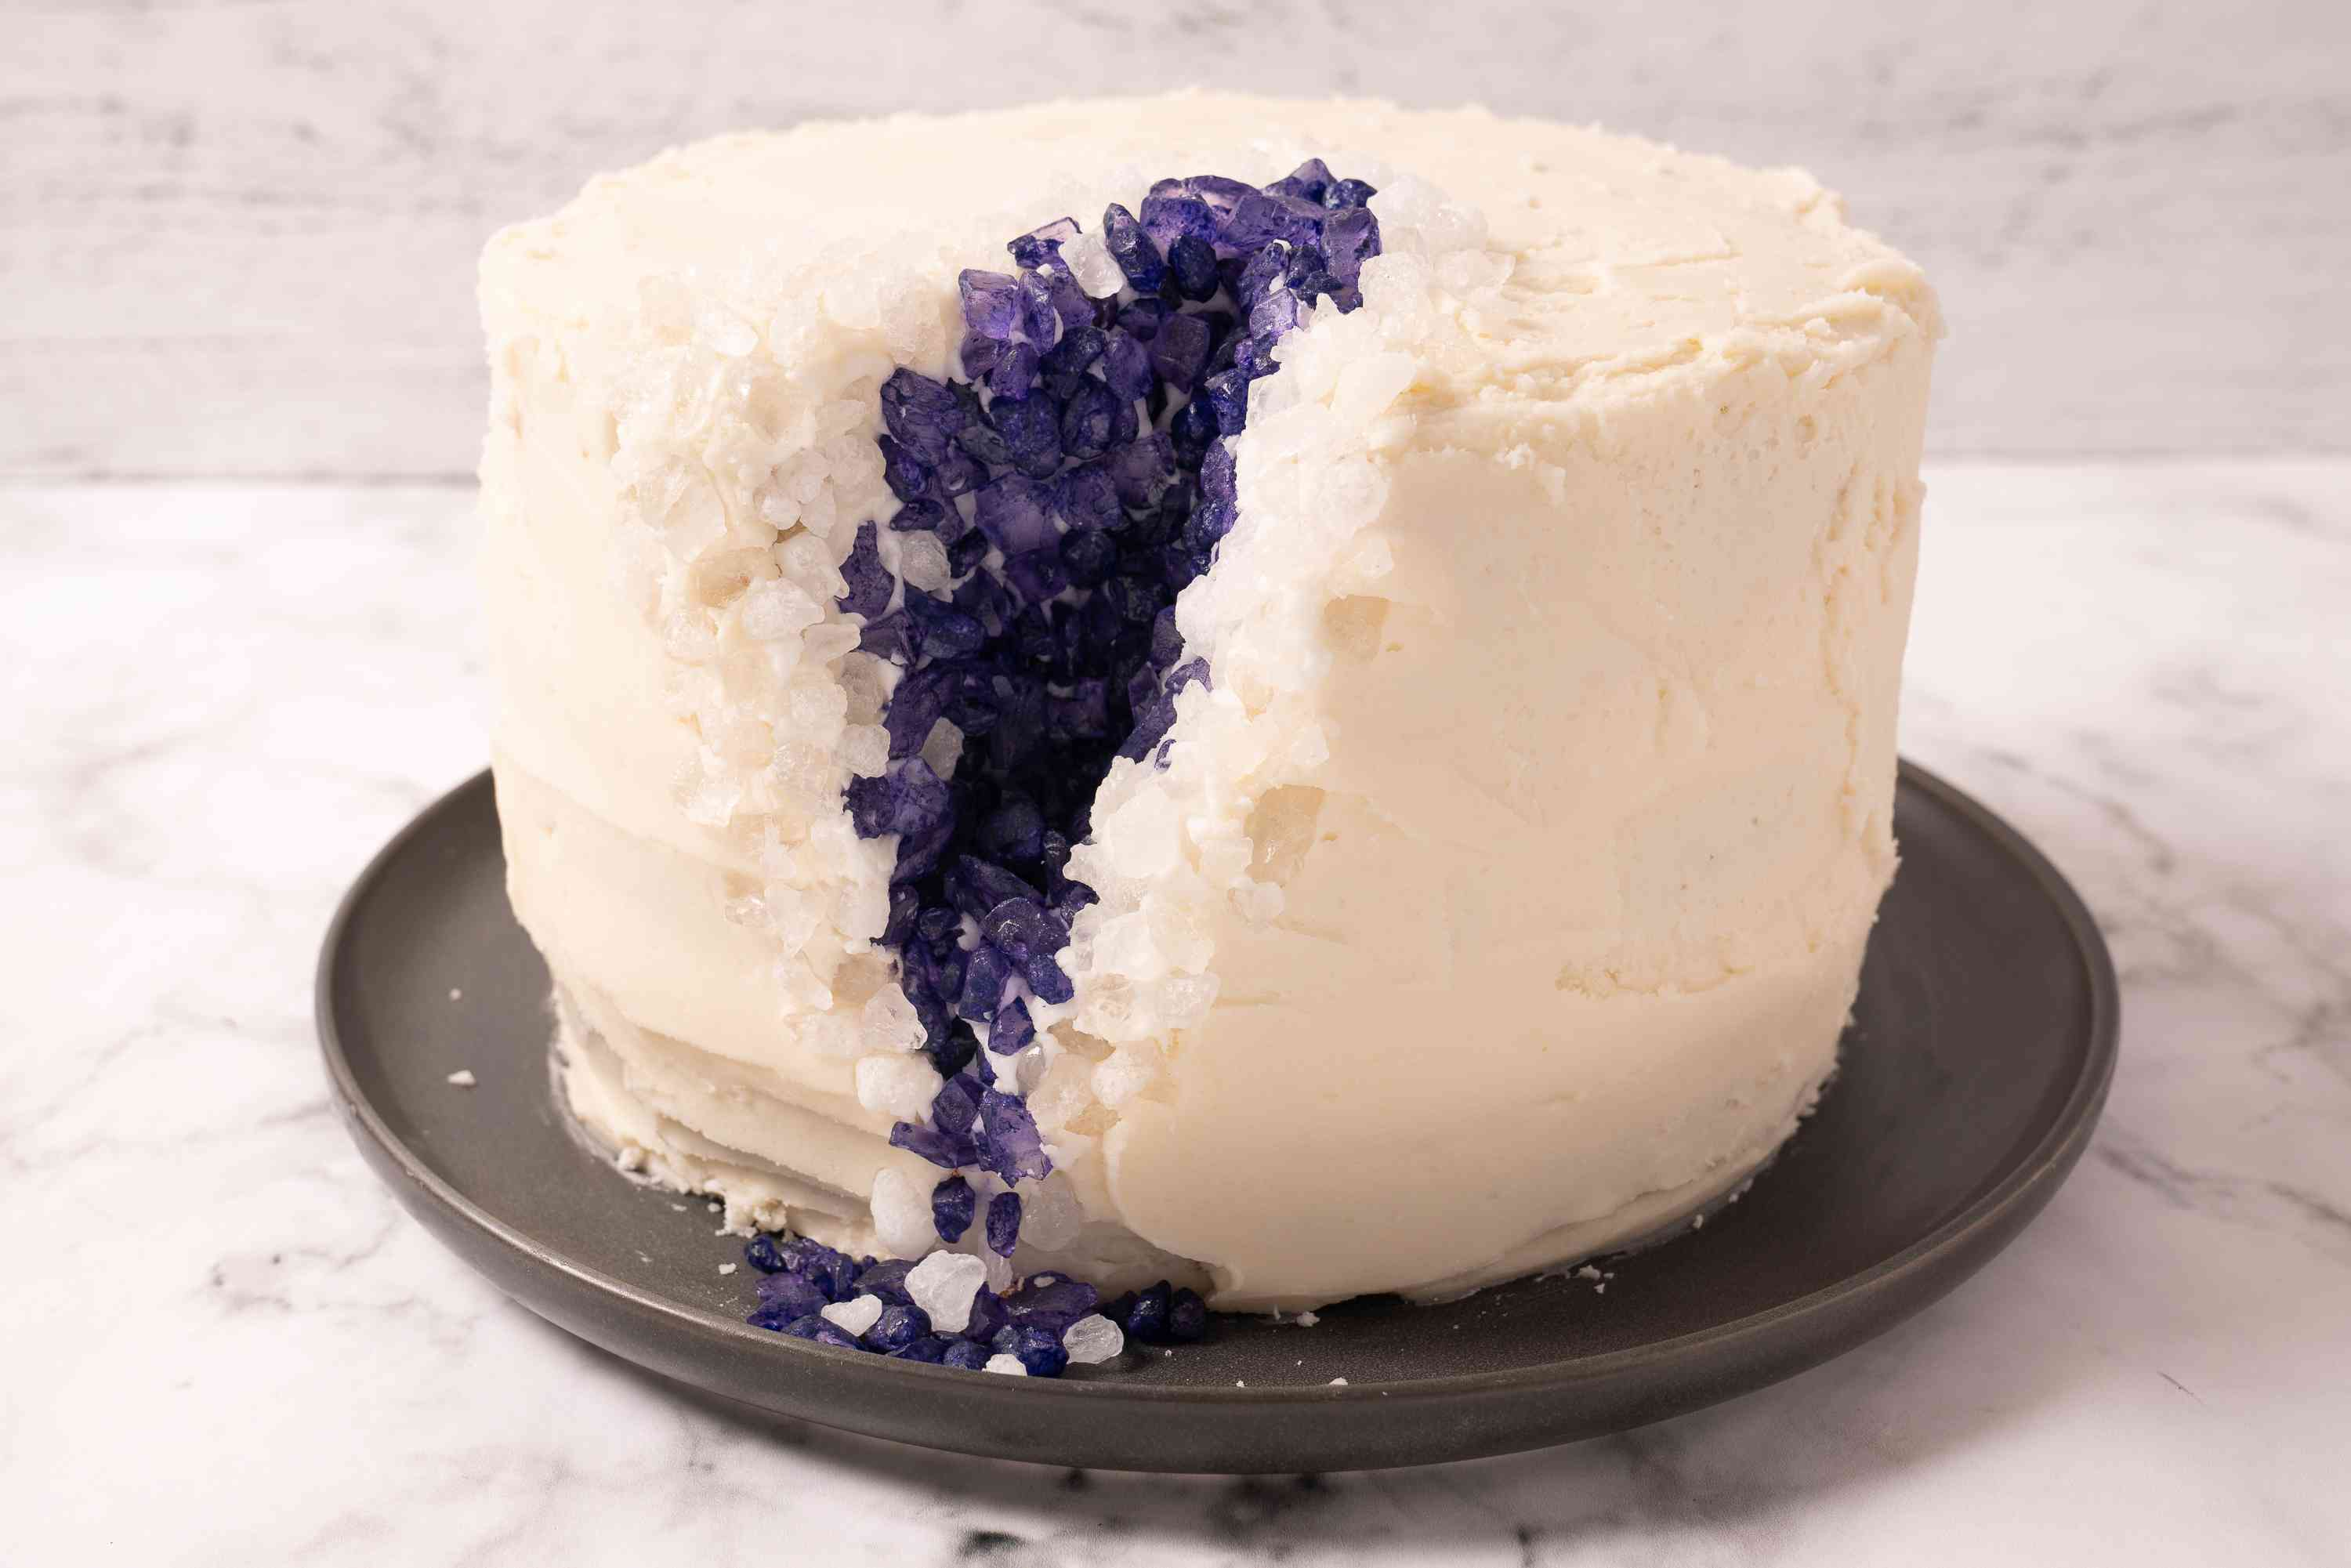 Purple rock candy is edged with white rock candy